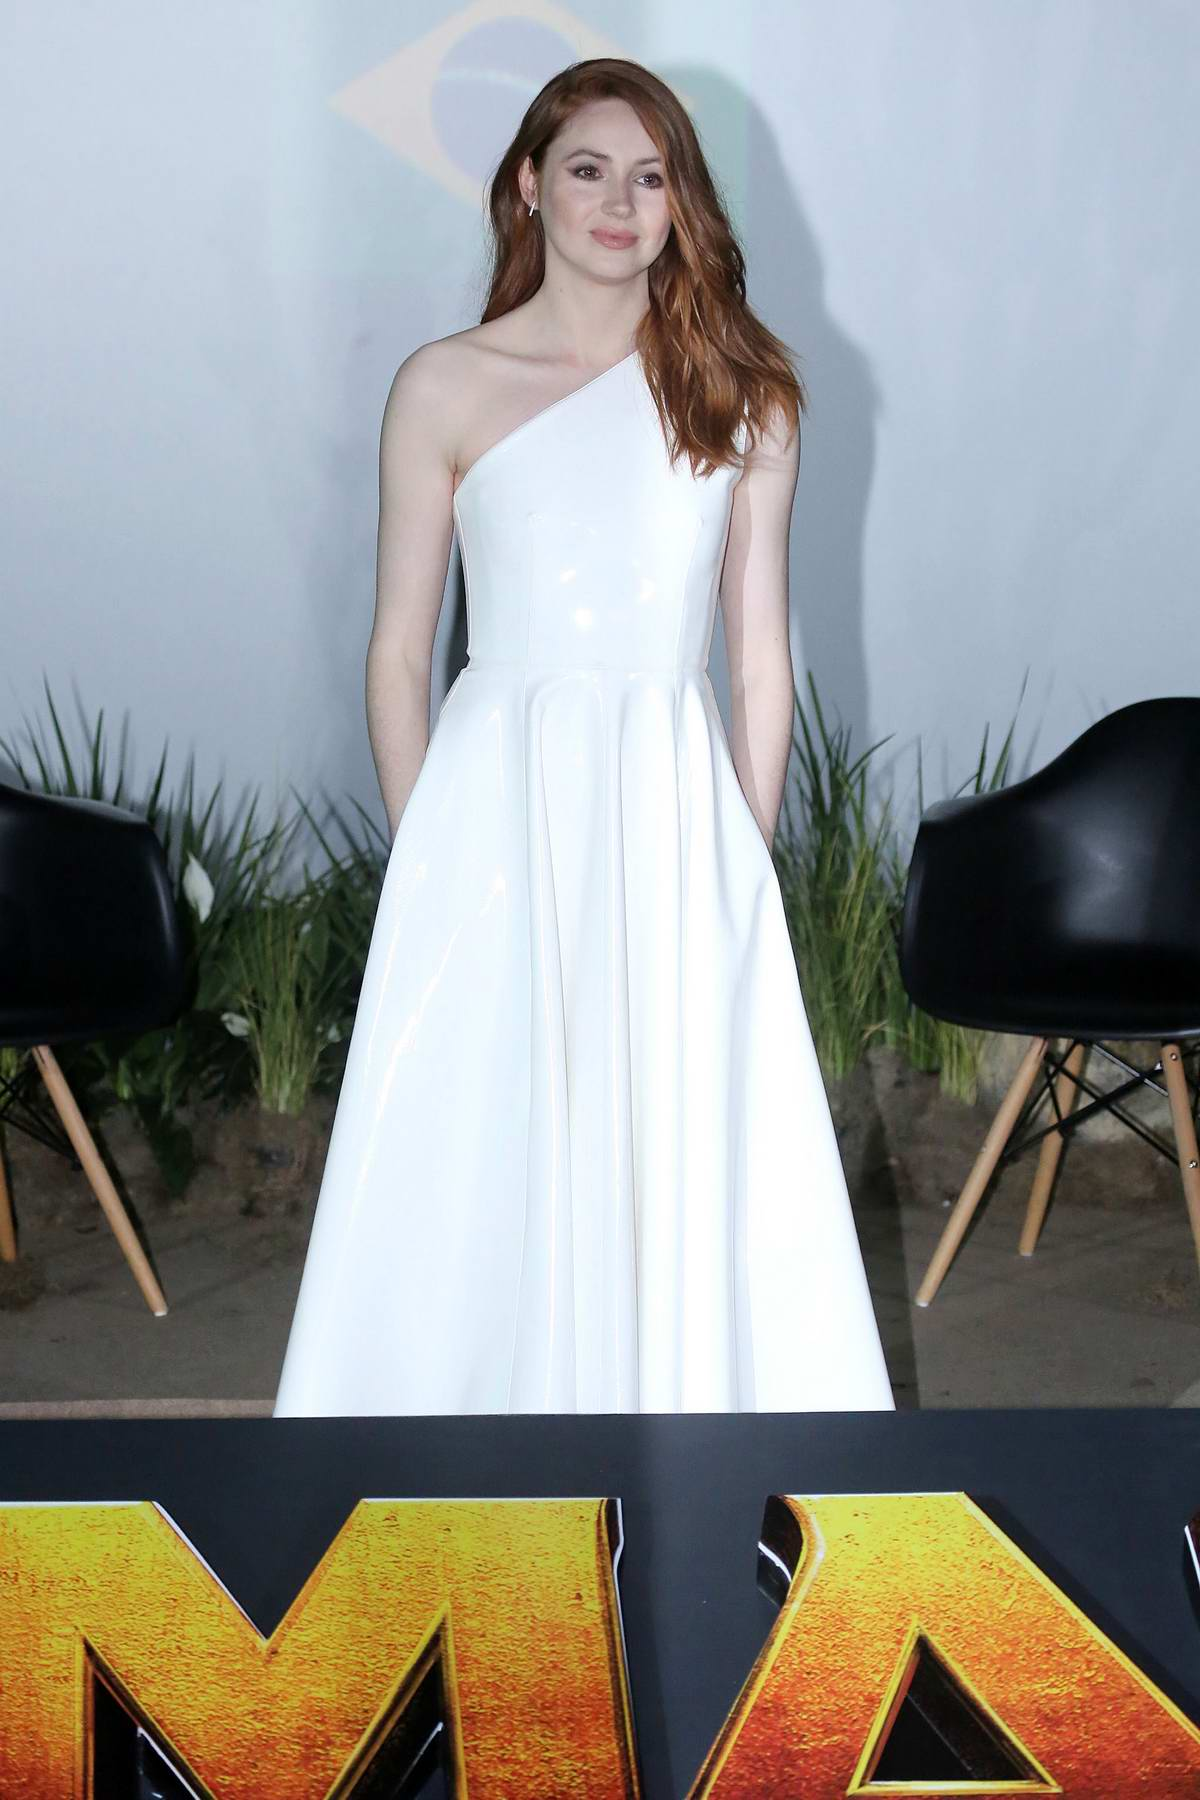 Karen Gillan attends a Photocall for 'Jumanji' in Sao Paulo, Brazil